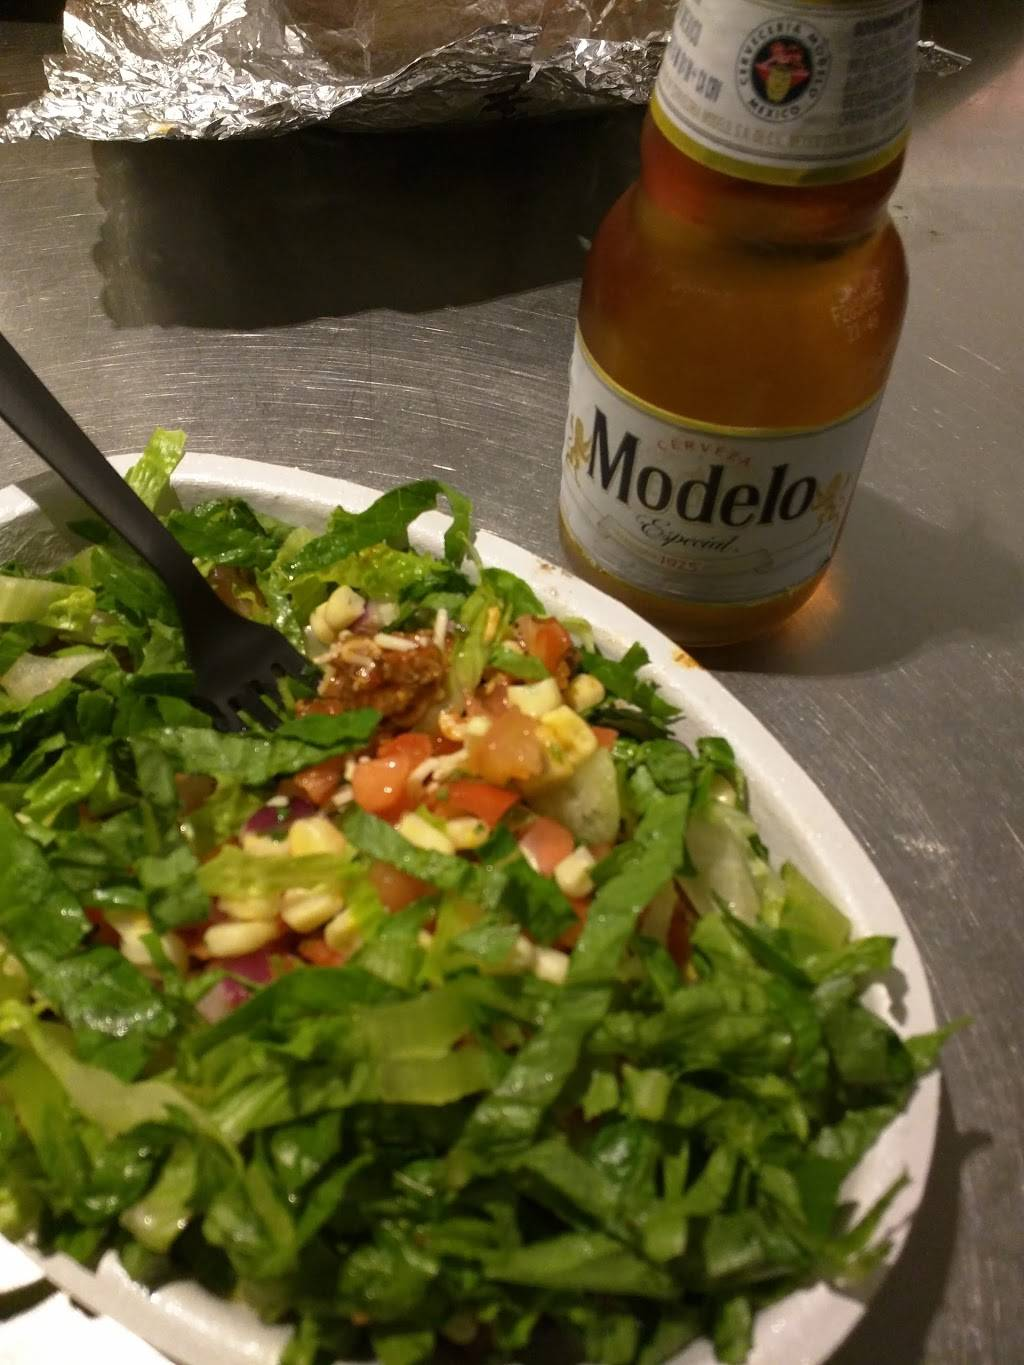 Chipotle Mexican Grill   restaurant   927 S Euclid St Ste B, Anaheim, CA 92802, USA   6575496350 OR +1 657-549-6350